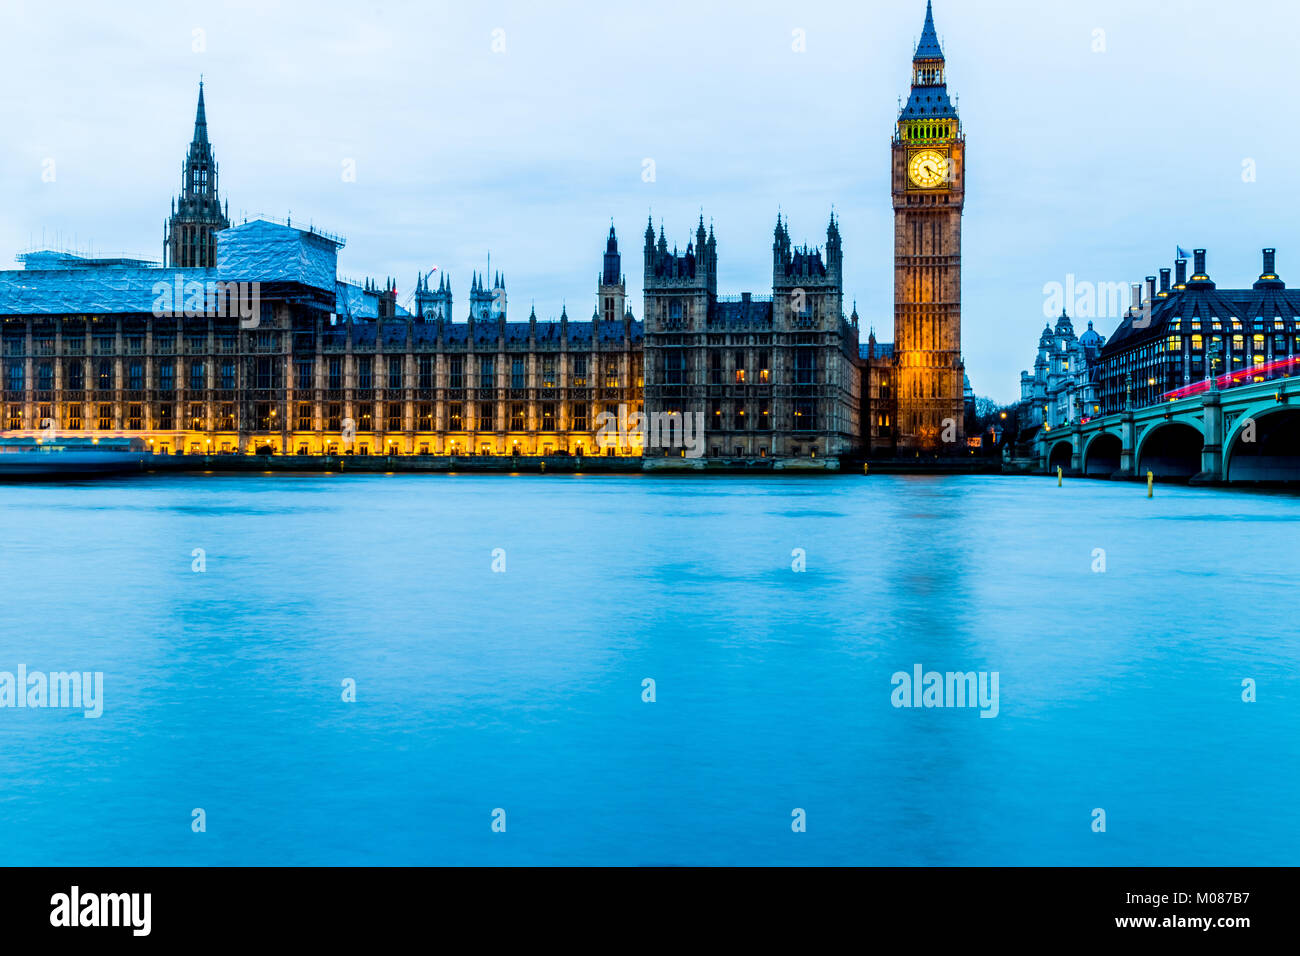 Big Ben, Houses of Parliament Stockbild